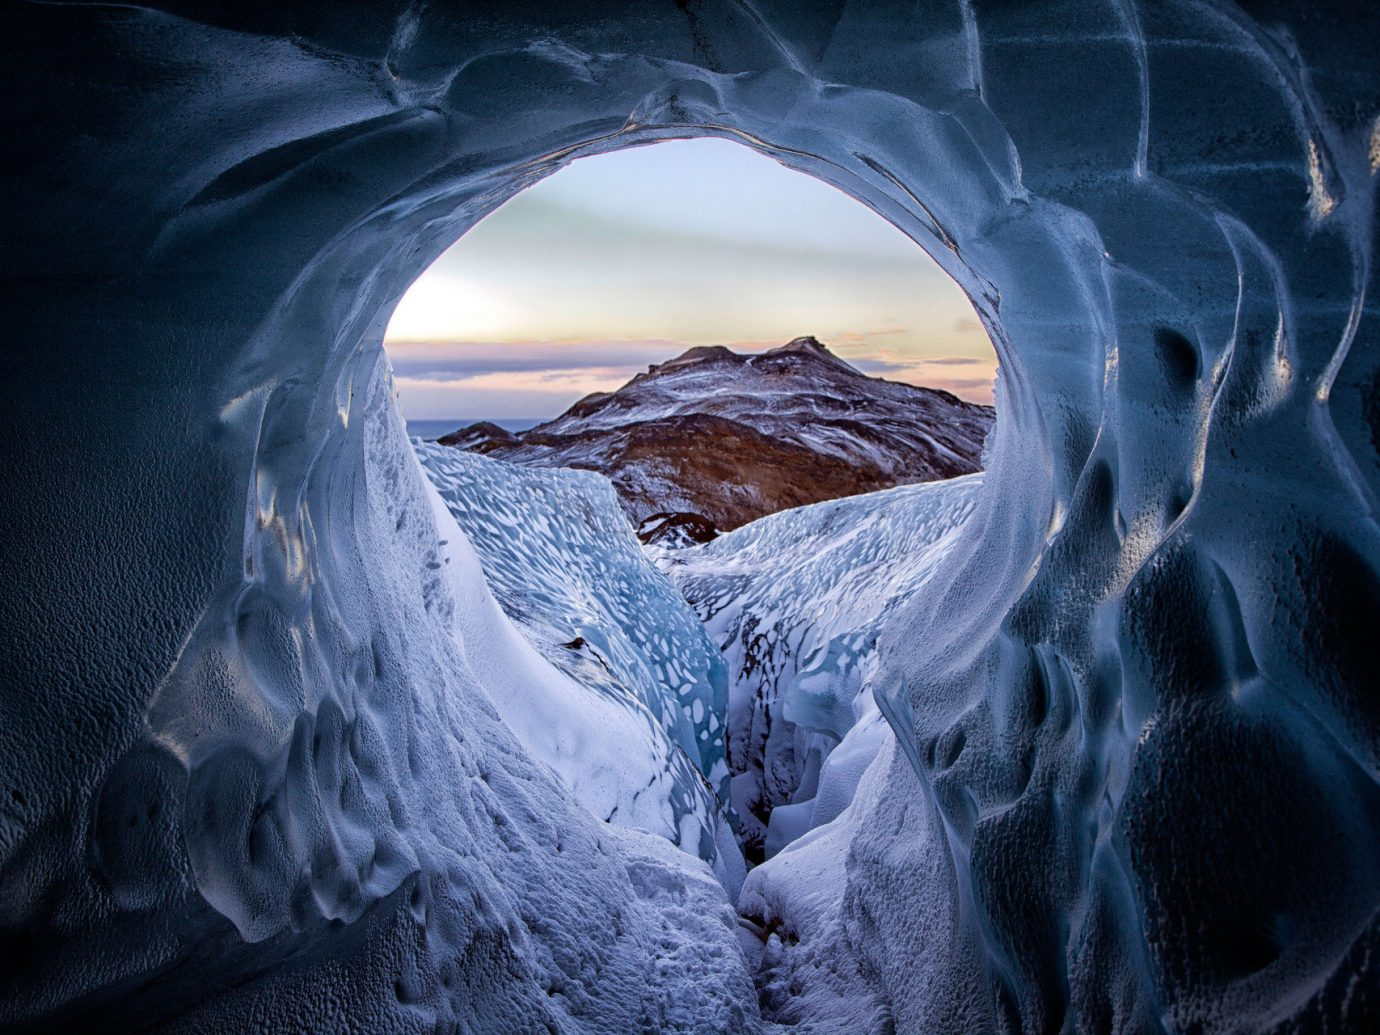 cave ice ice cave isolation majestic Mountains remote Scenic views snow Trip Ideas view Winter Nature blue darkness Waterfall screenshot reflection sunlight computer wallpaper melting